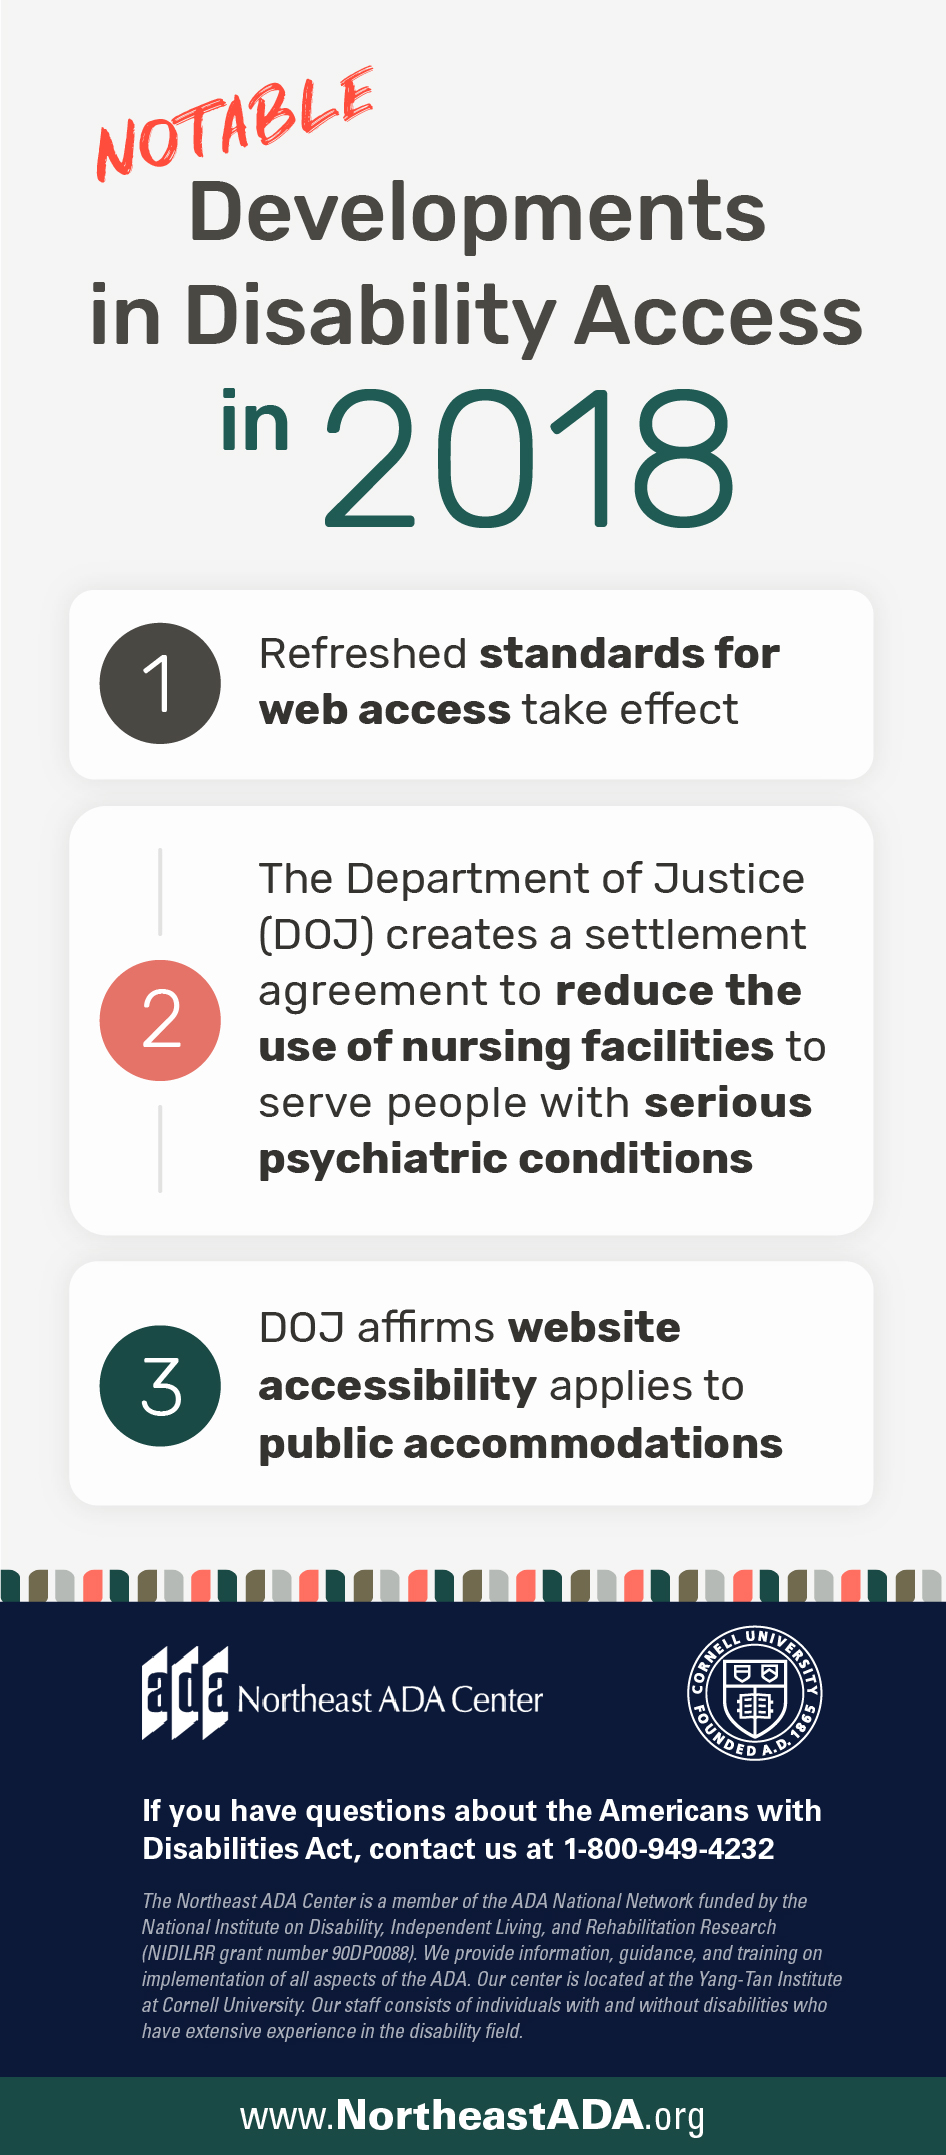 Infographic titled 'Notable Developments in Disability Access in 2018' featuring several text boxes: